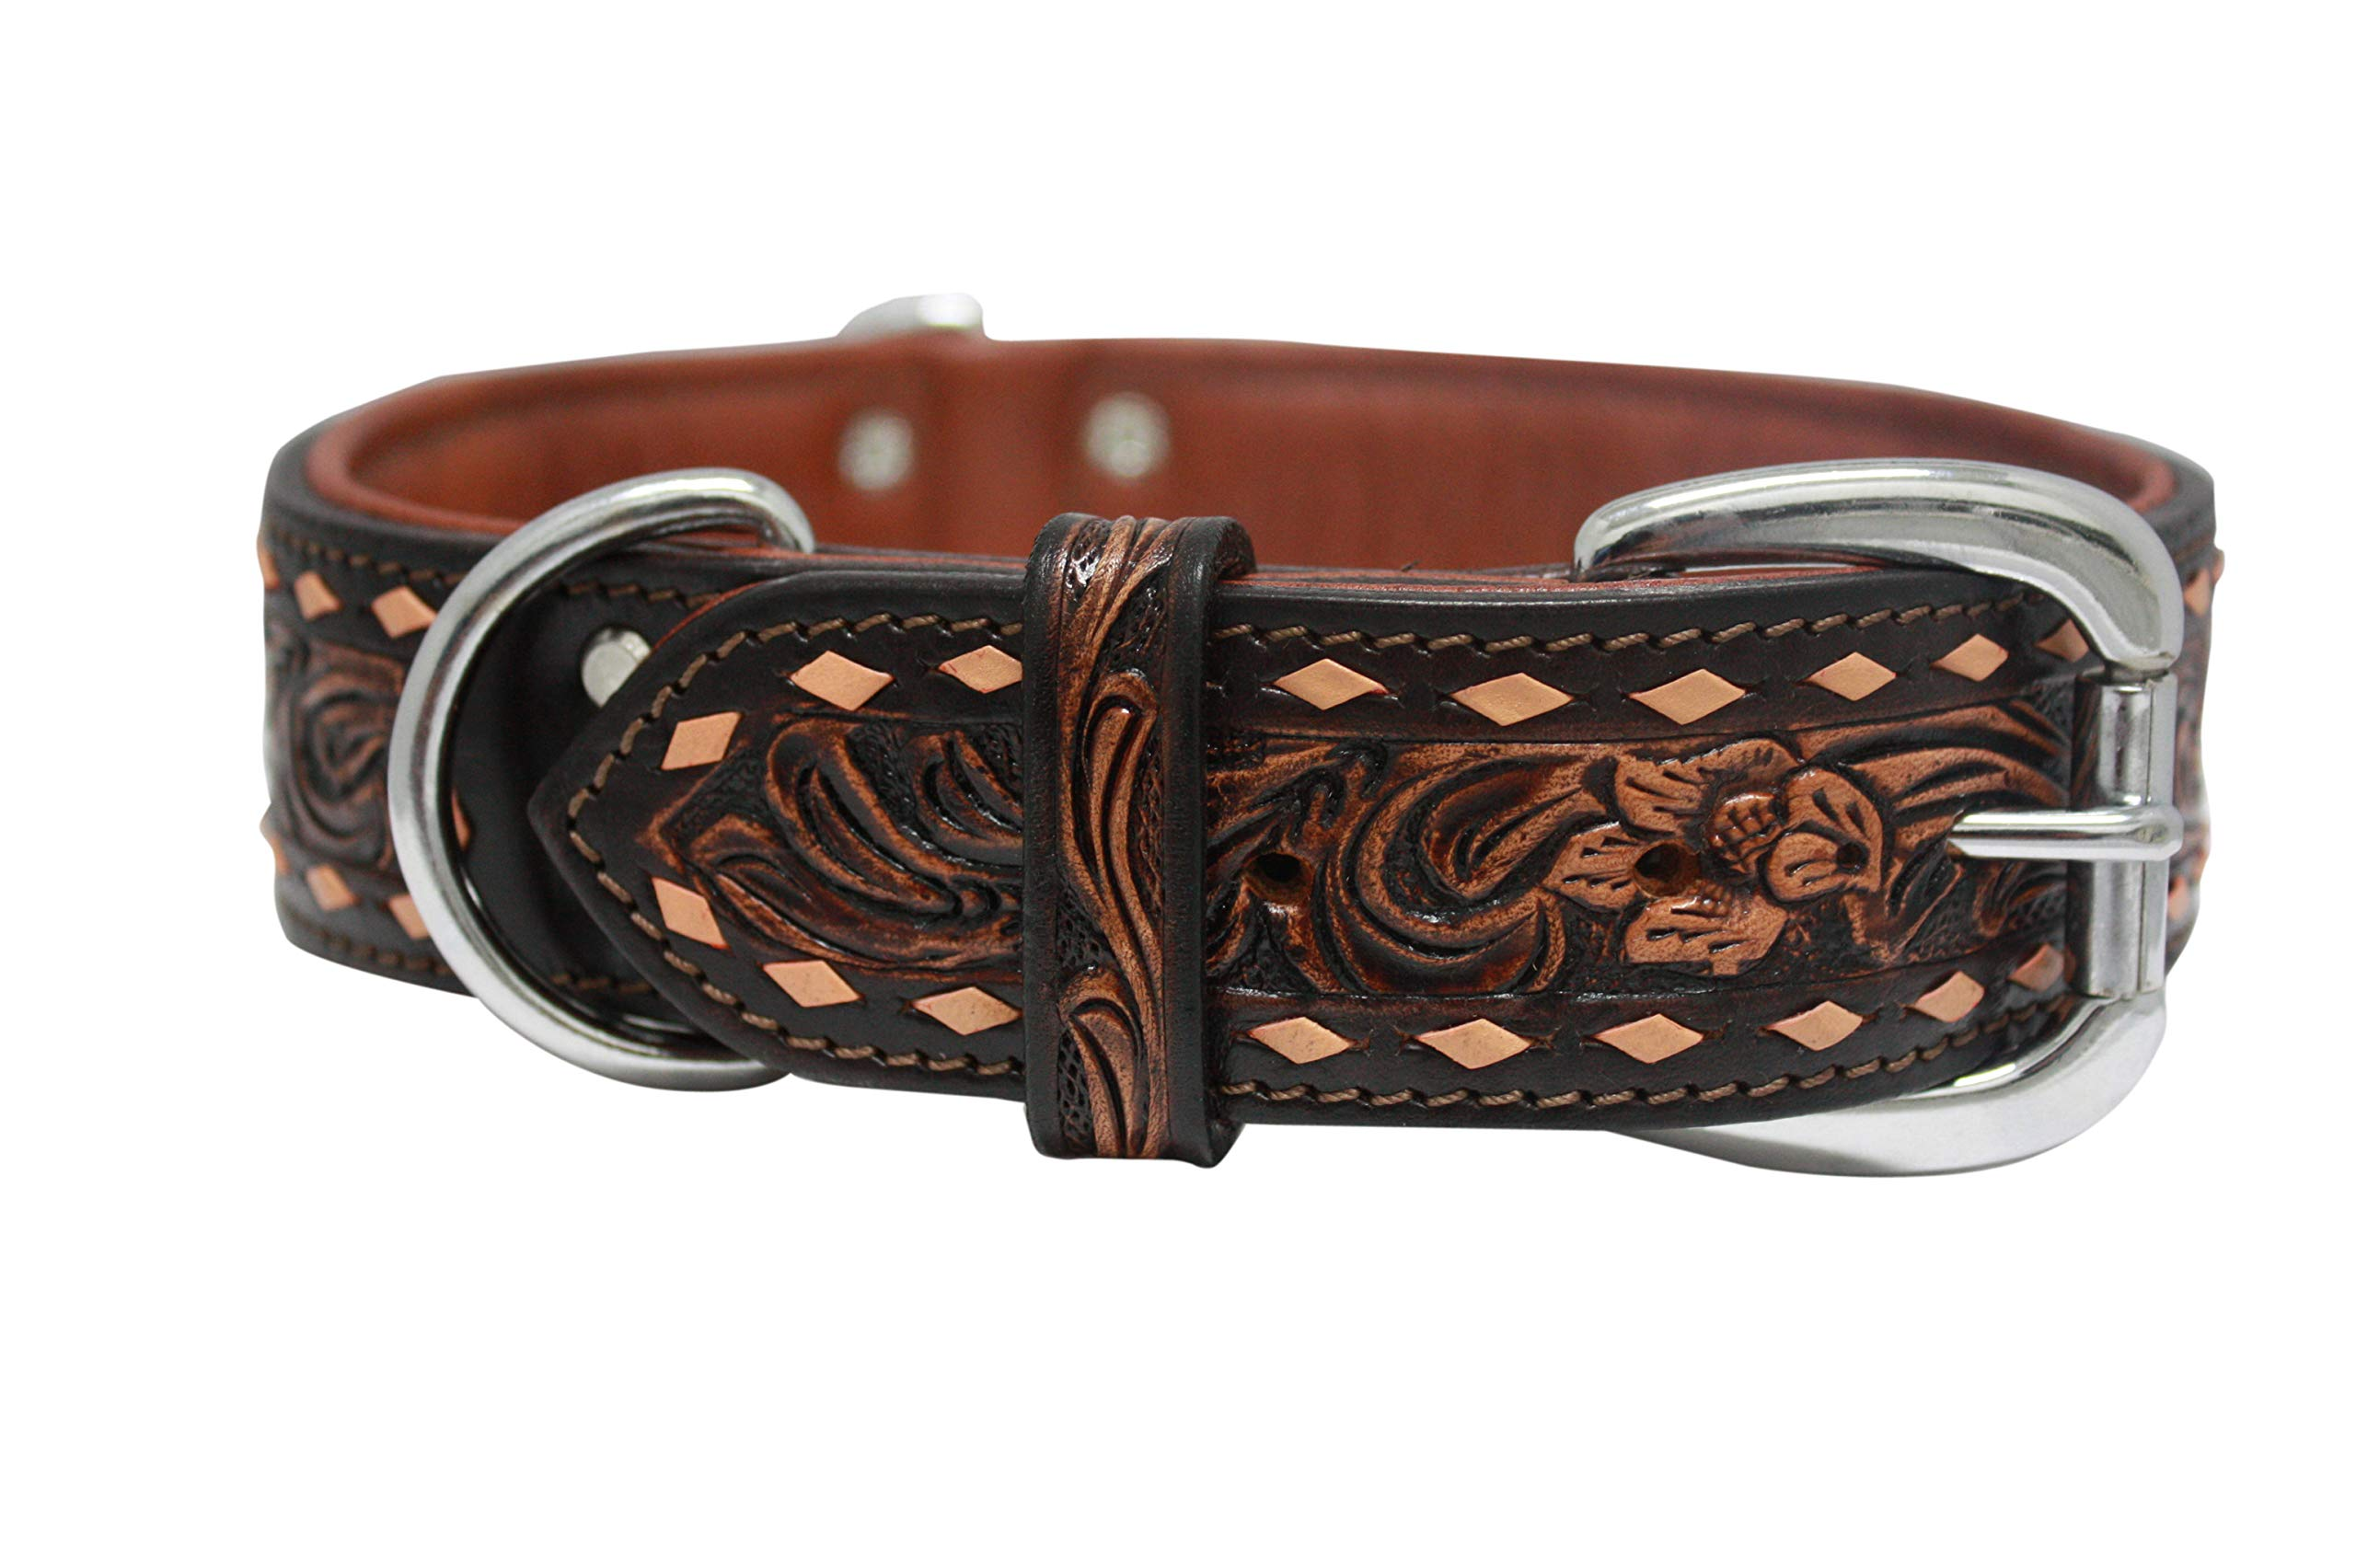 Angel, Tucson, 24'' x 1.5'' Genuine Leather Tooled Dog Collar, Hand Made, Two- Tone Finish, Buck Stitched and Padded. Fits Most Labs, Shepherds or Any Dog with a Neck Size 17''- 21.5'' or 80-100 LBS